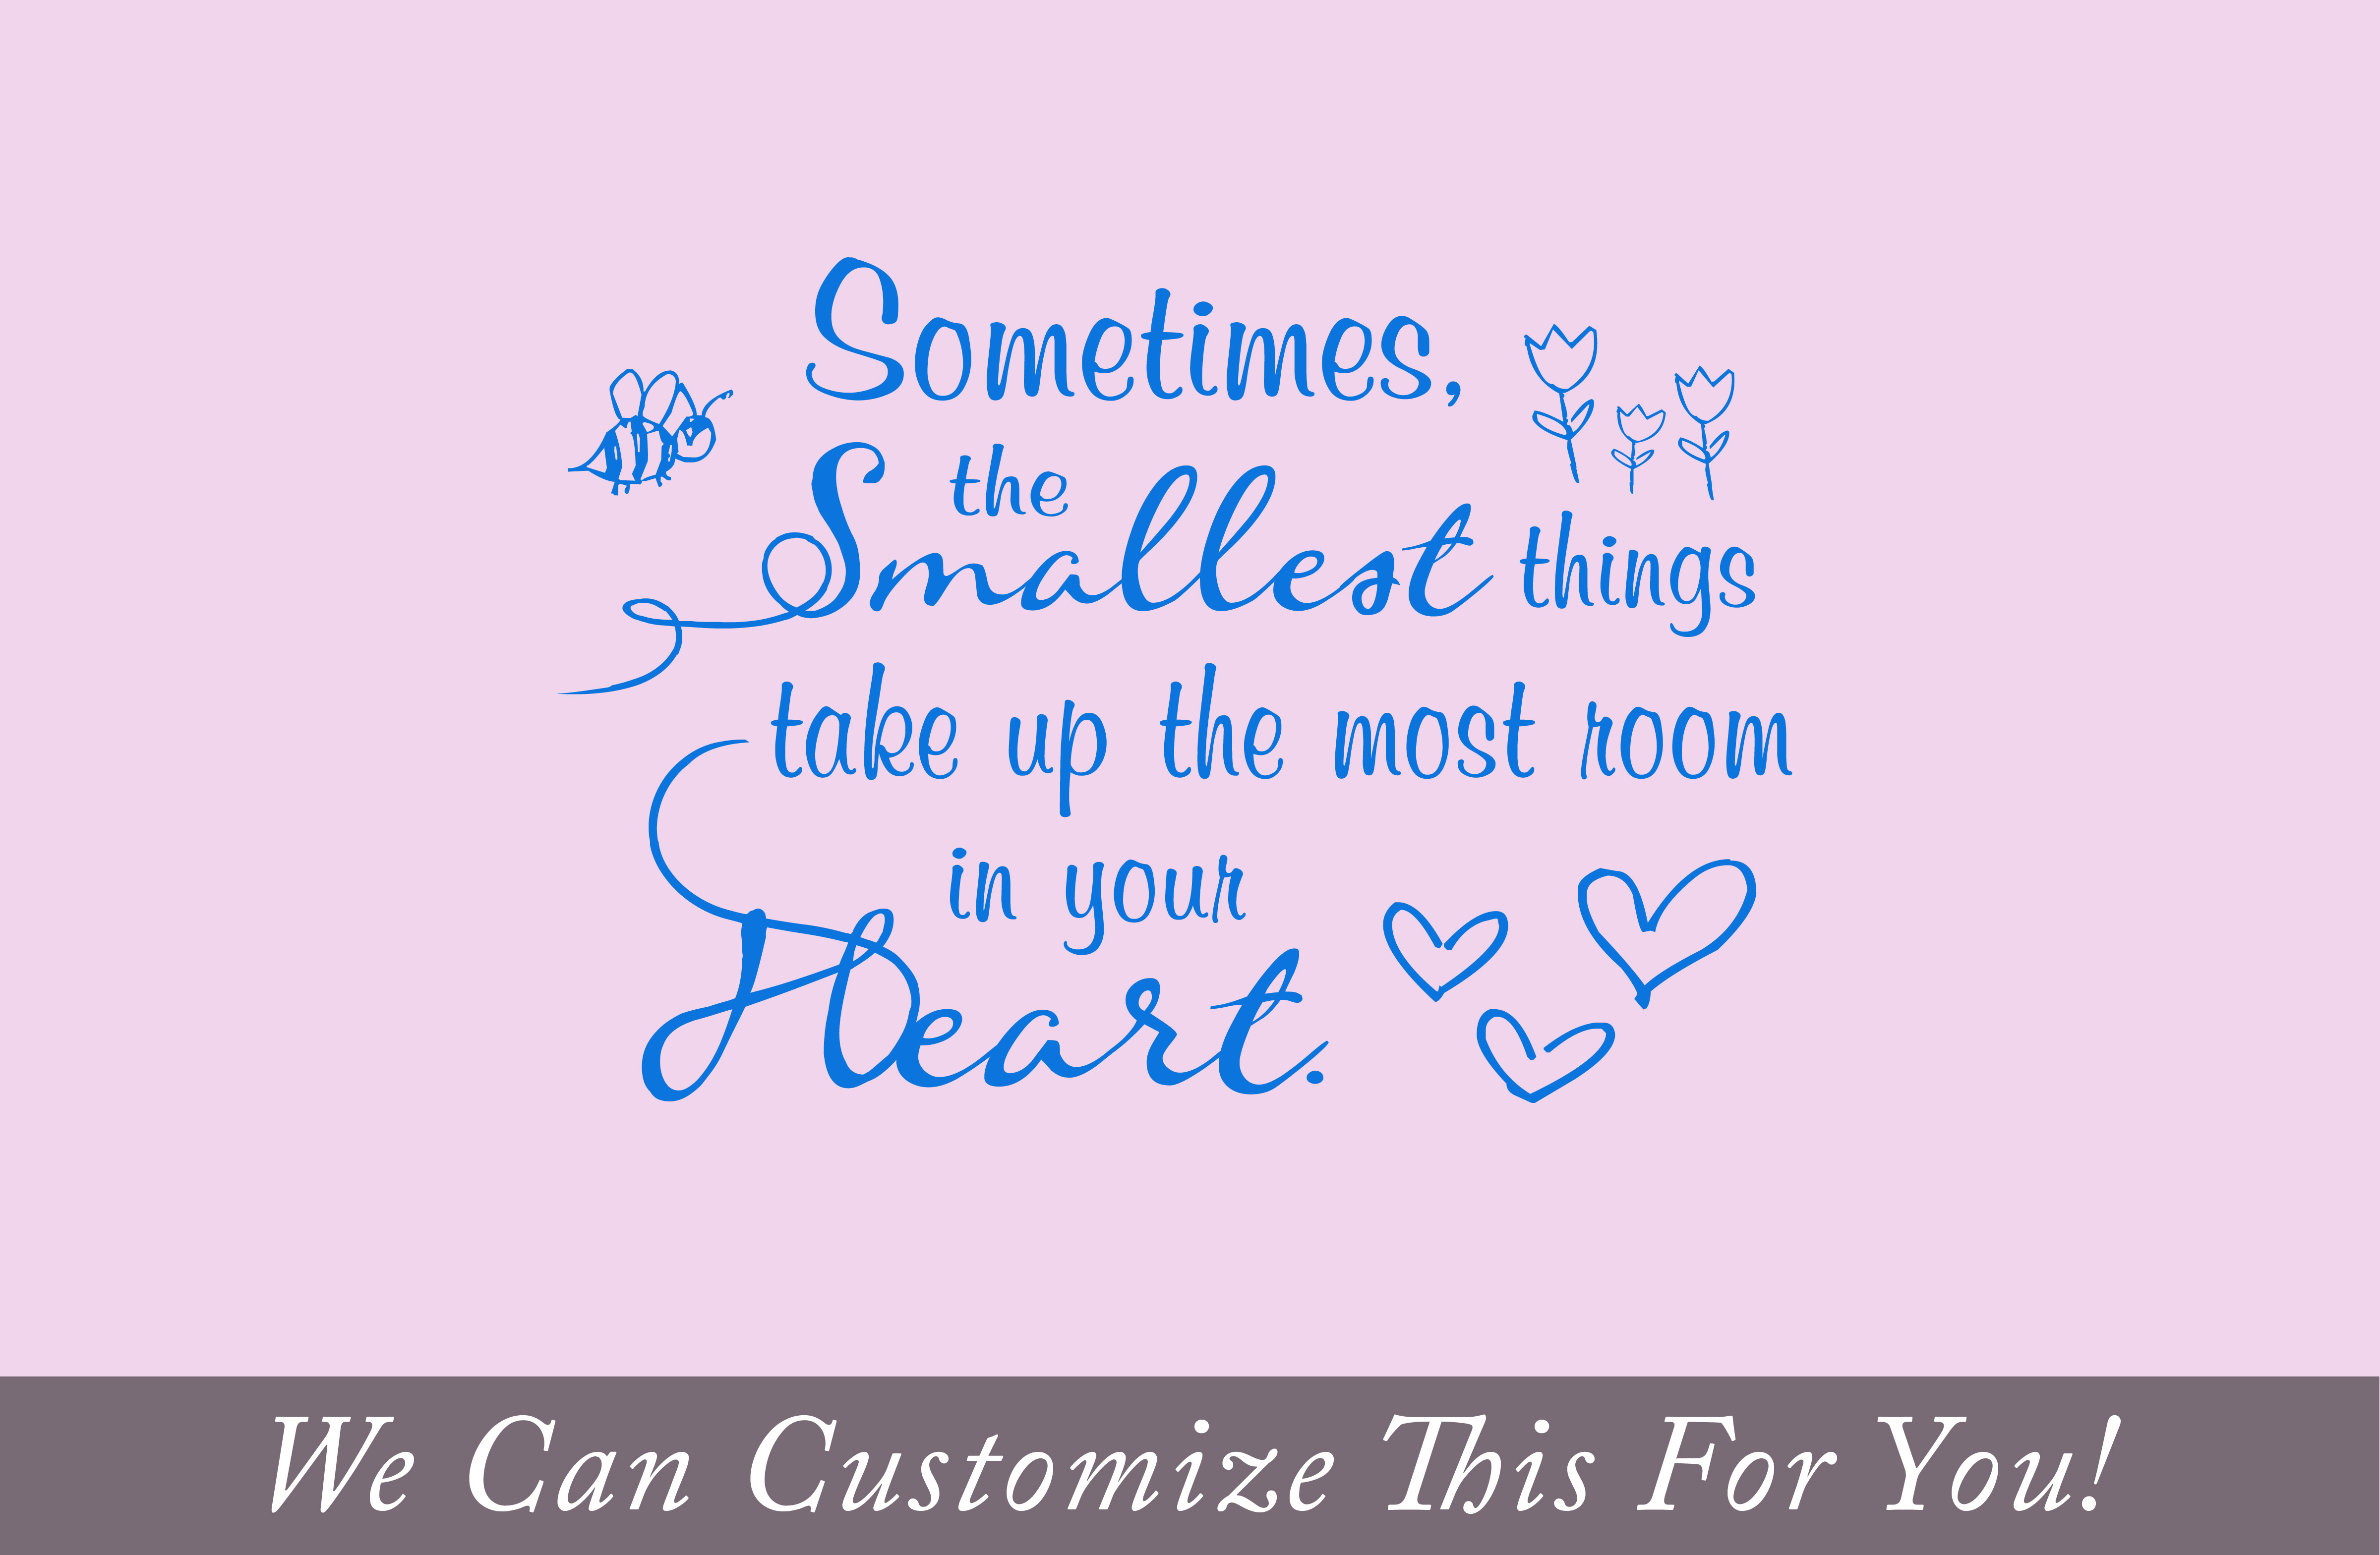 Sometimes the smallest things take up the most room in your heart sometimes the smallest things take up the most room in your heart winnie the pooh quote a wall decor vinyl decal nursery or babyroom 2024 amipublicfo Images